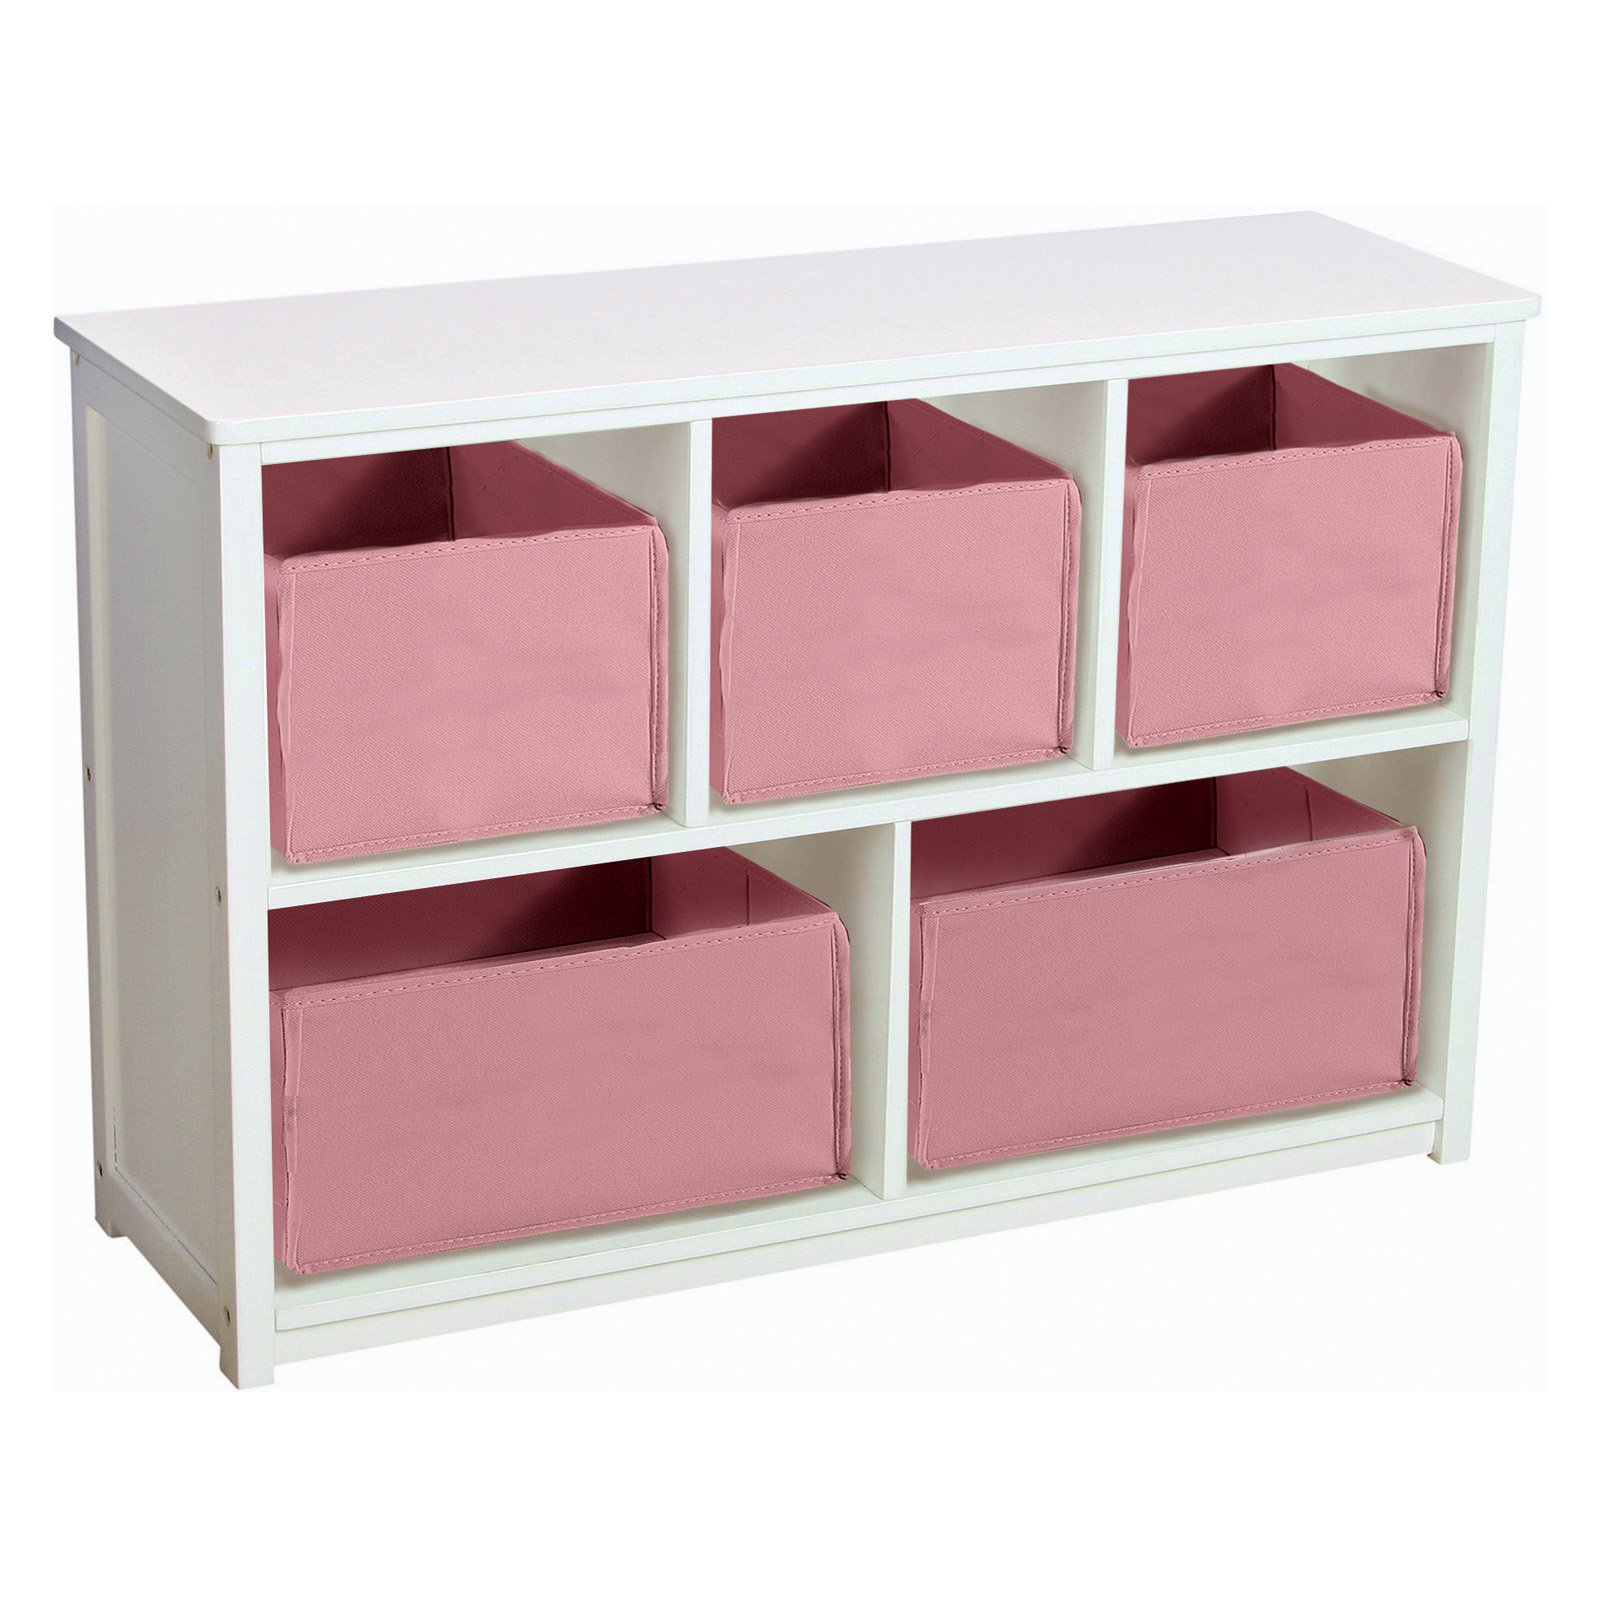 Guidecraft Classic White Bookshelf With Optional Baskets